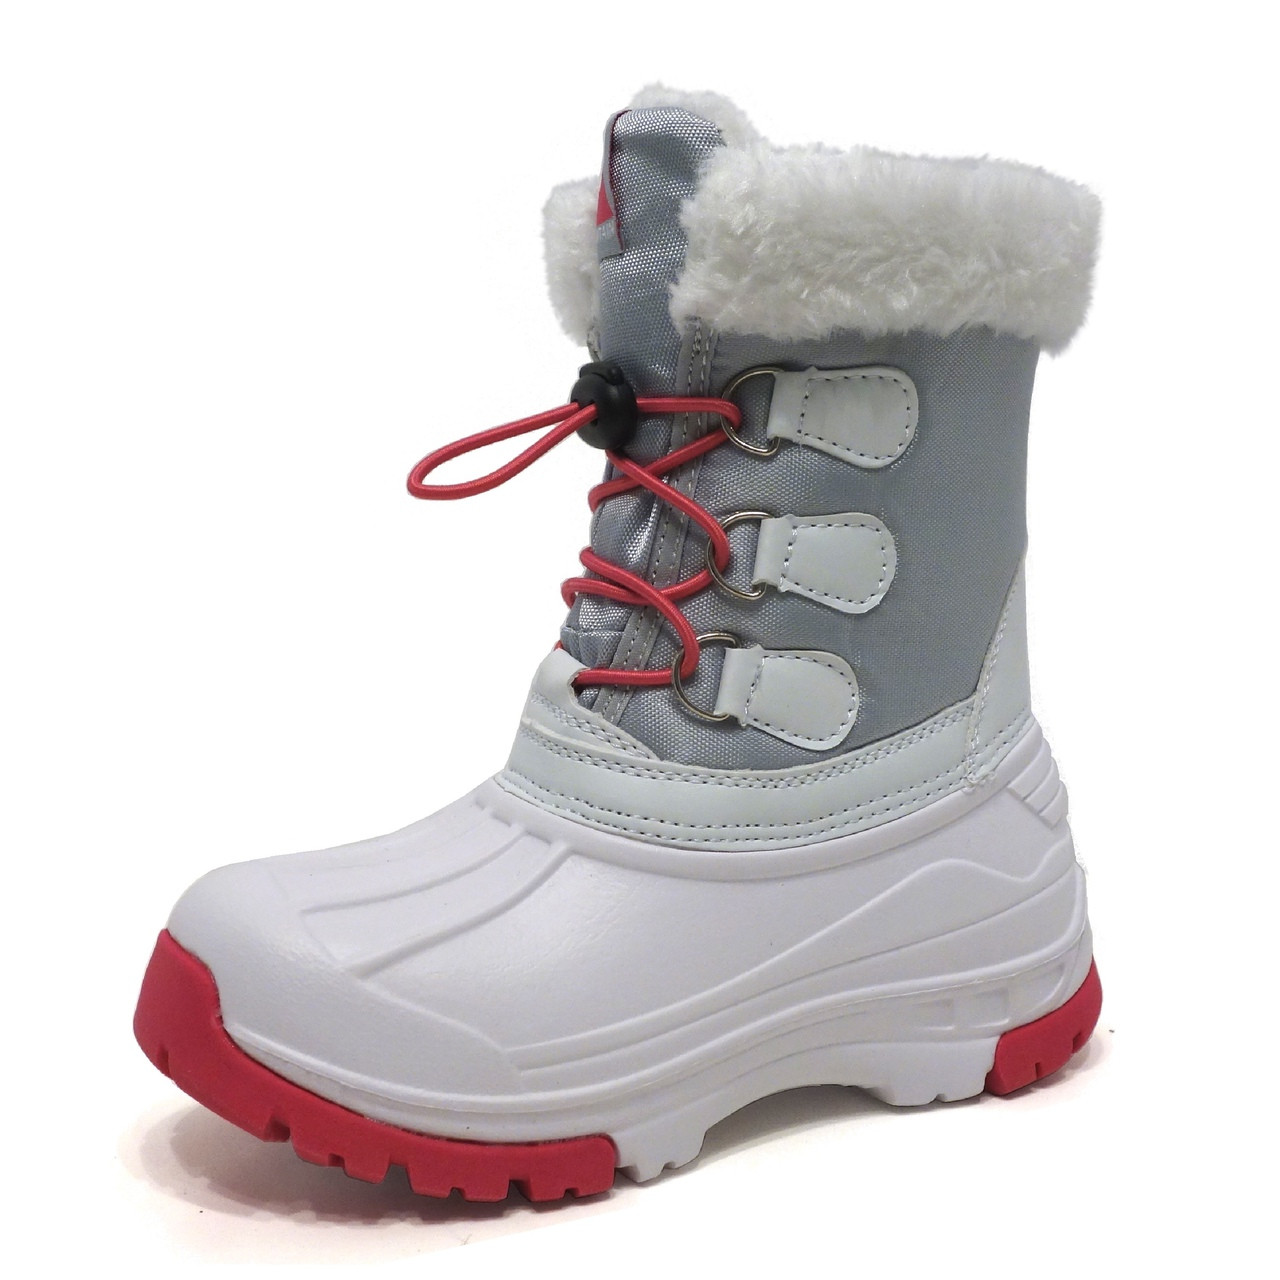 bec3bf316de4 Nova Toddler Little Kid s Winter Snow Boots - Girl WB01 White - Nova ...